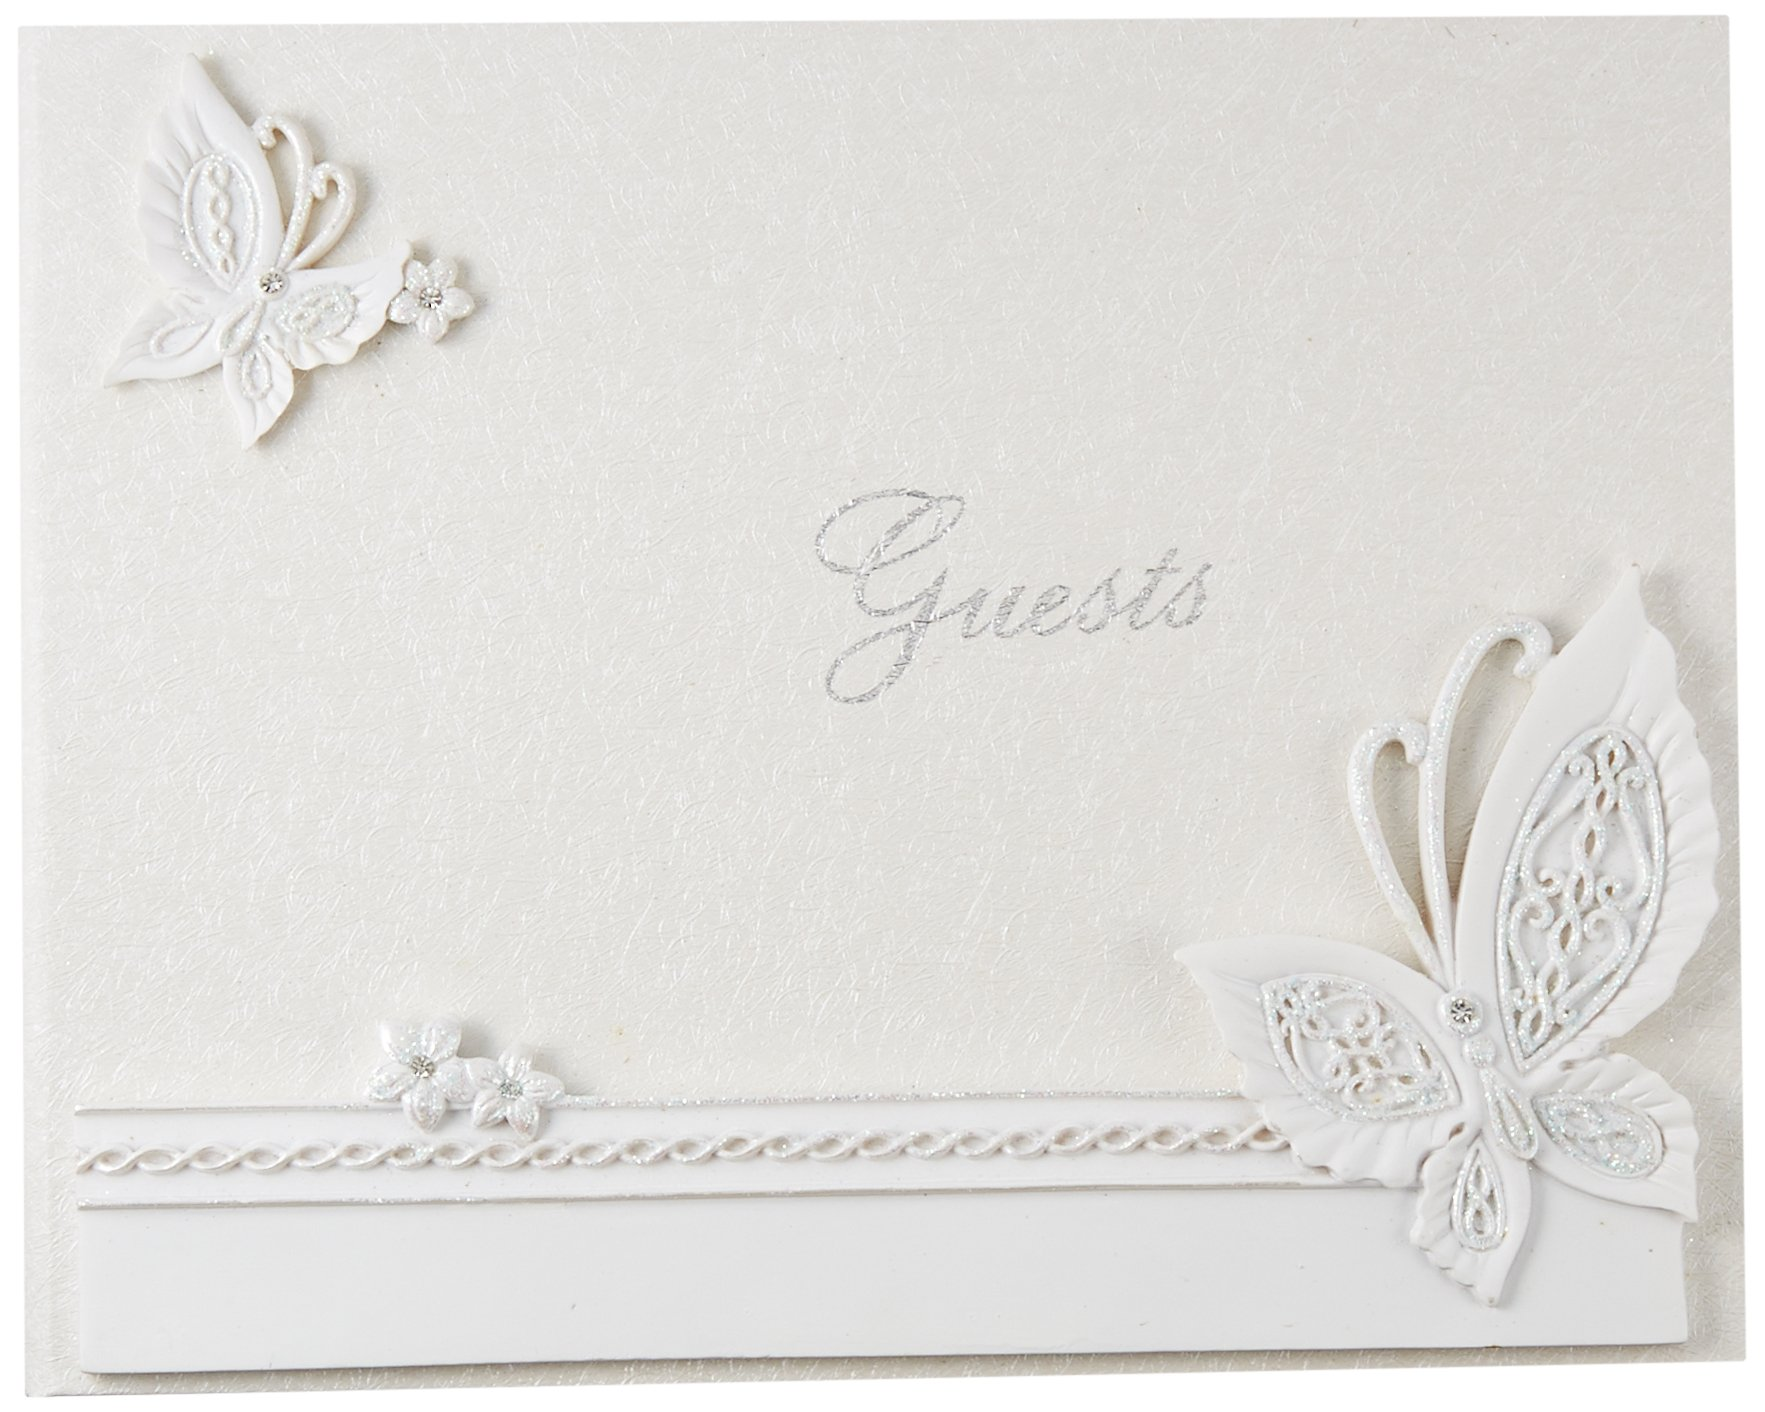 Butterfly Design Wedding Guest Book by Fashioncraft